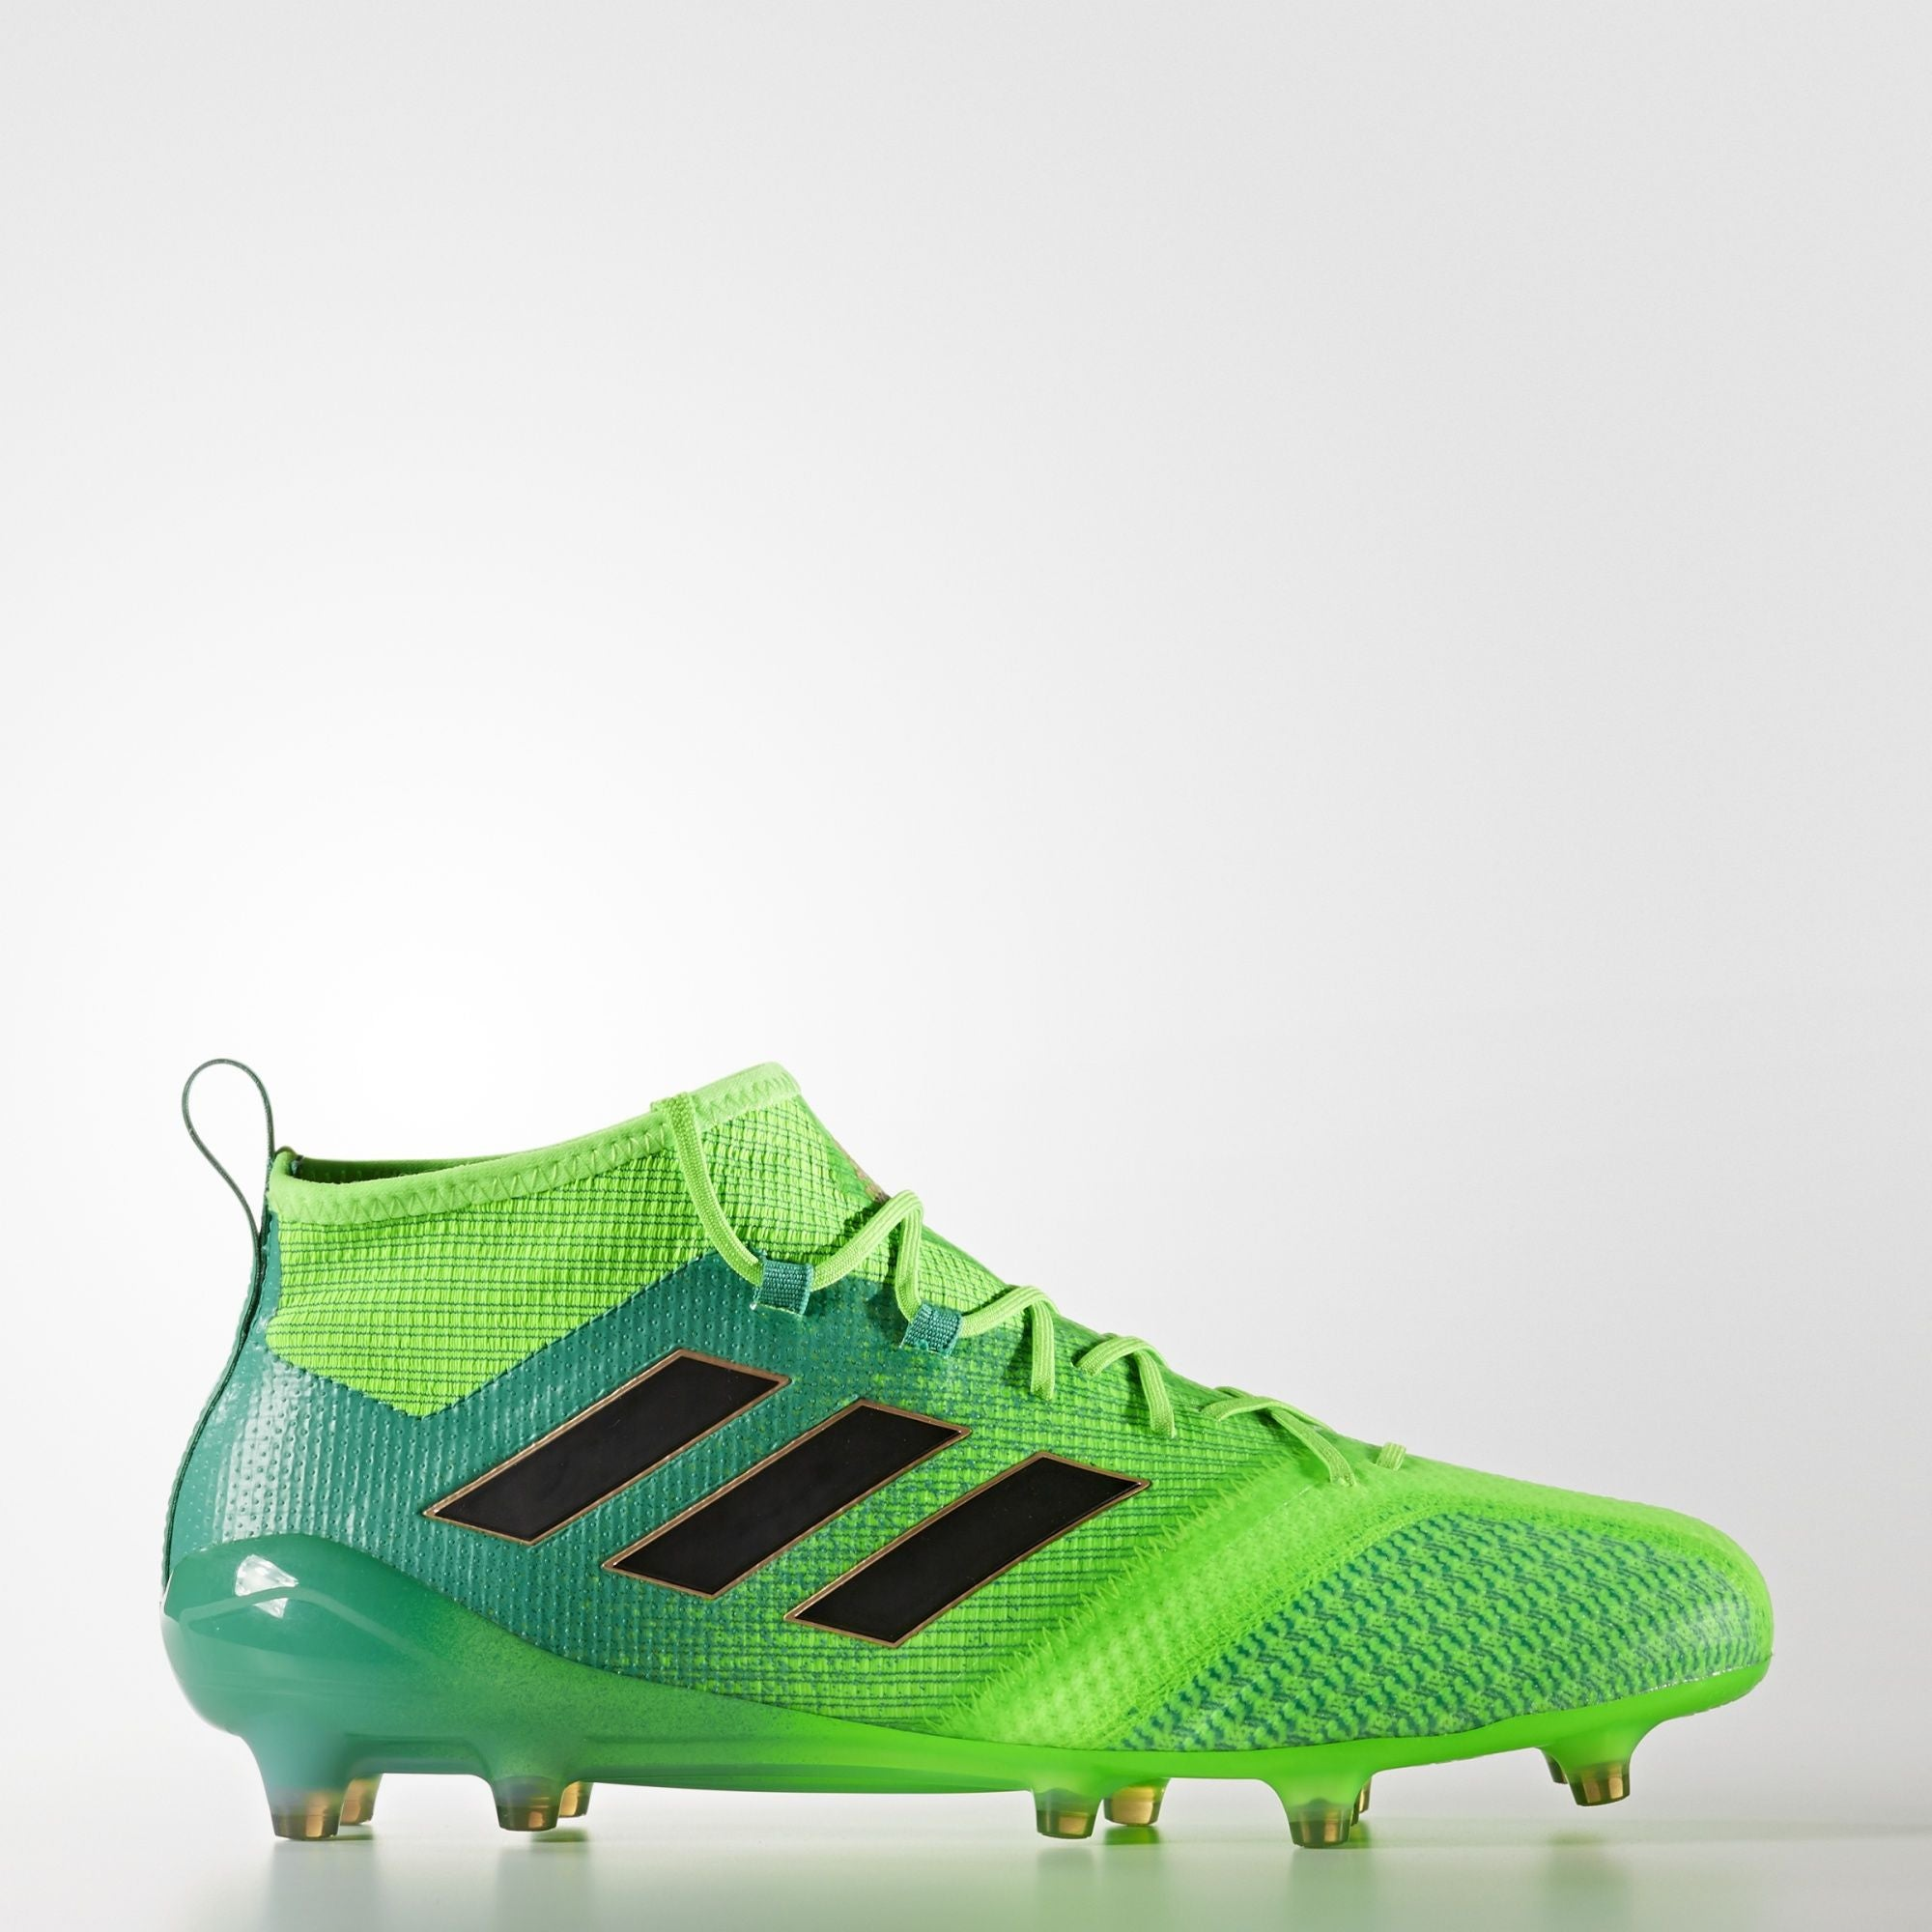 finest selection 54125 00caf Men's adidas ACE 17.1 Primeknit Firm Ground Football Boots